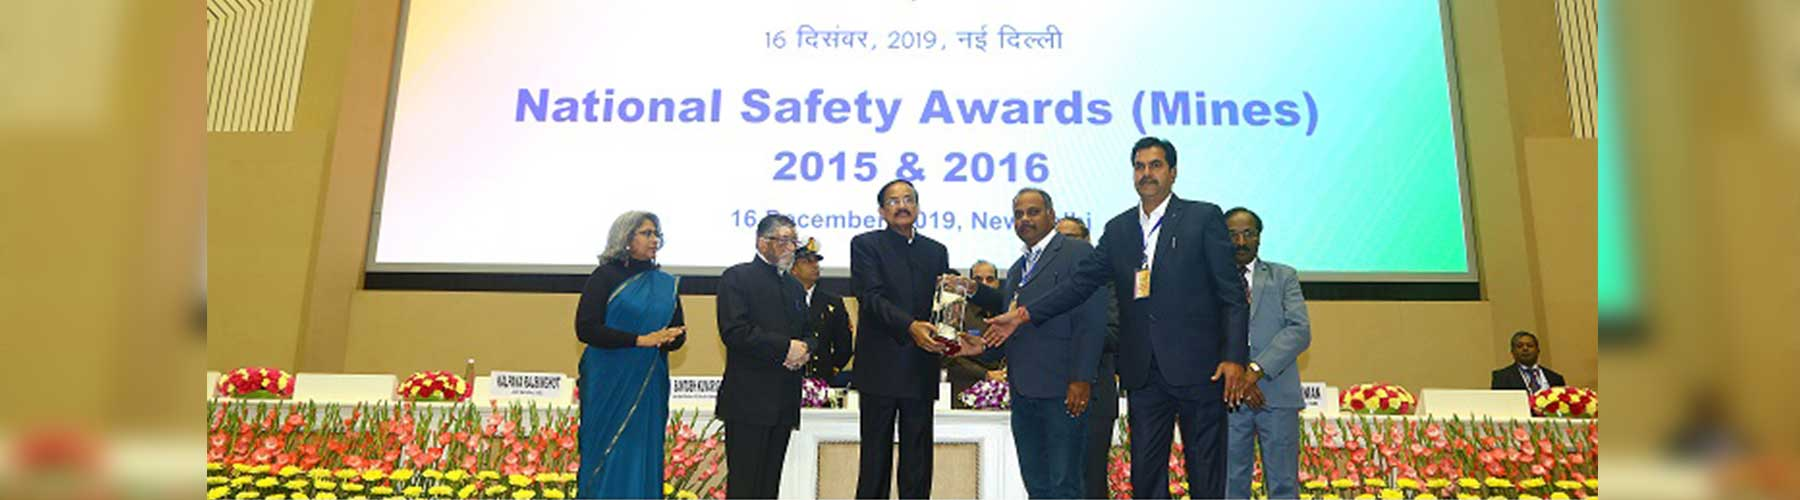 Hon'able Vice President of India , giving National Safety Awards (Mines) for 2015 & 2016 on 16th Dec, 2019 at  at Vigwayan Bhawan , New Delhi